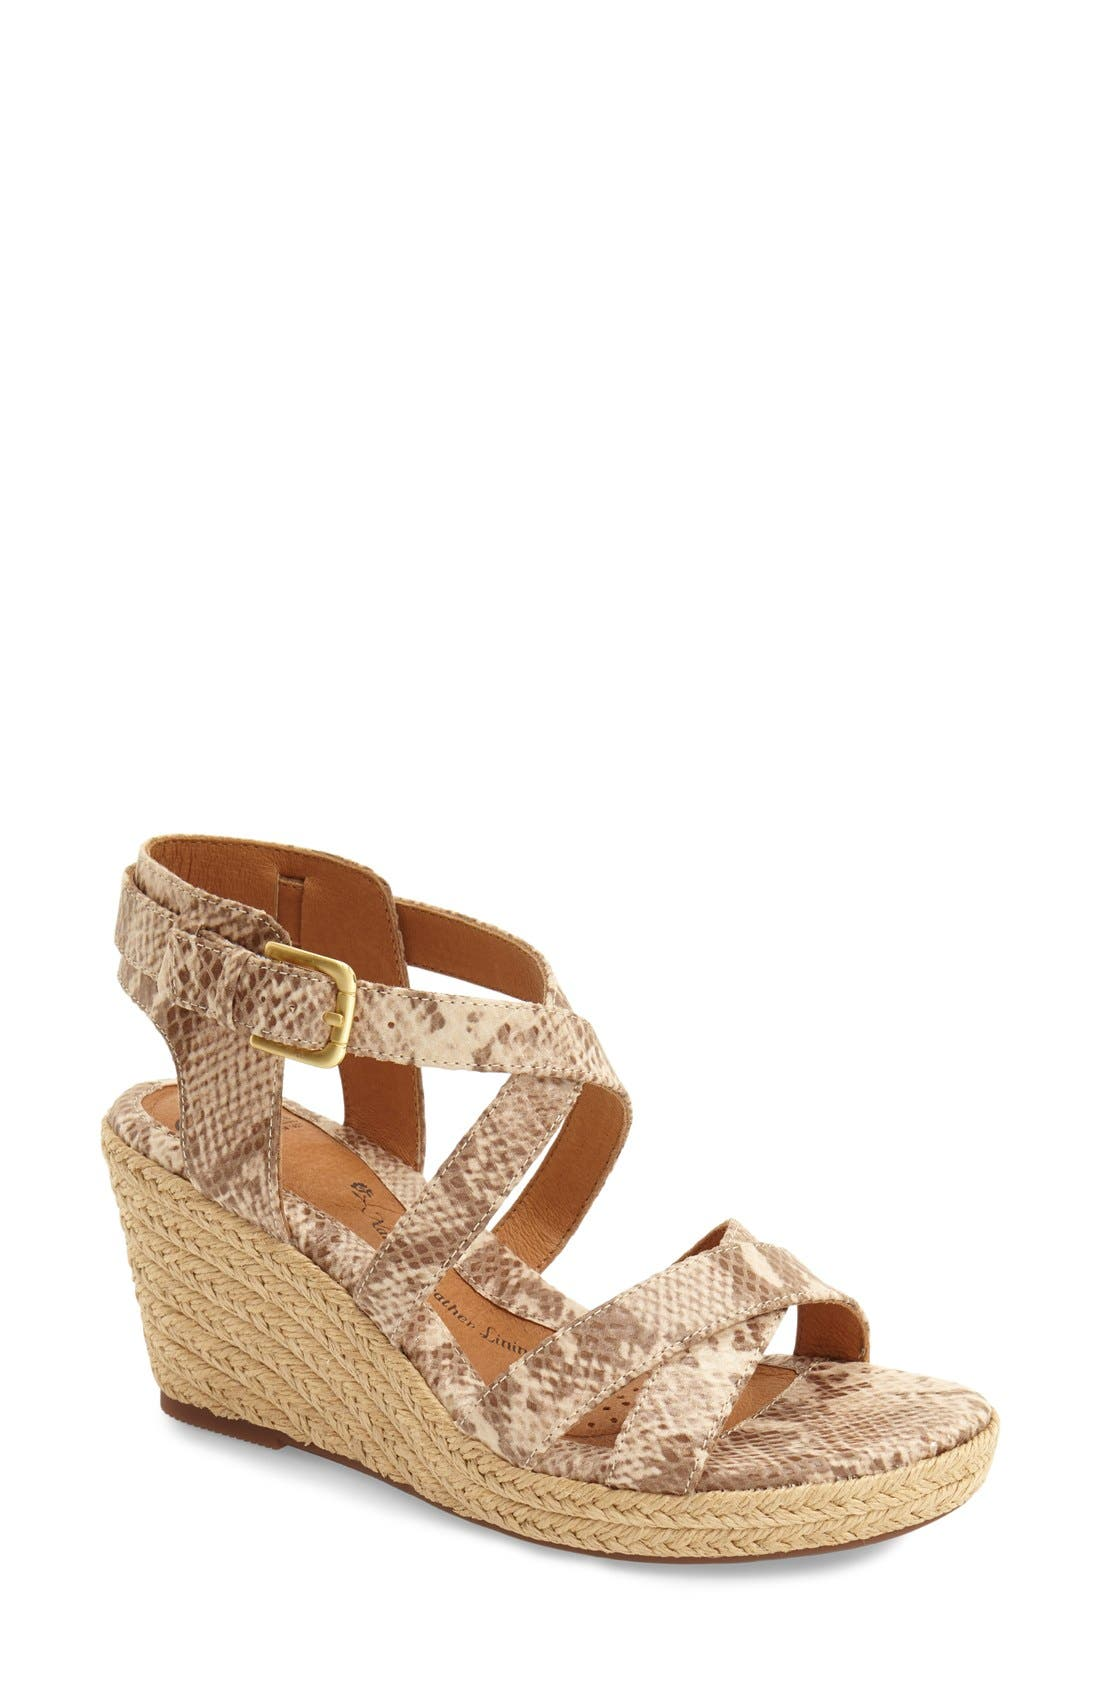 'Inez' Wedge Sandal,                         Main,                         color, Sand Snake Print Leather